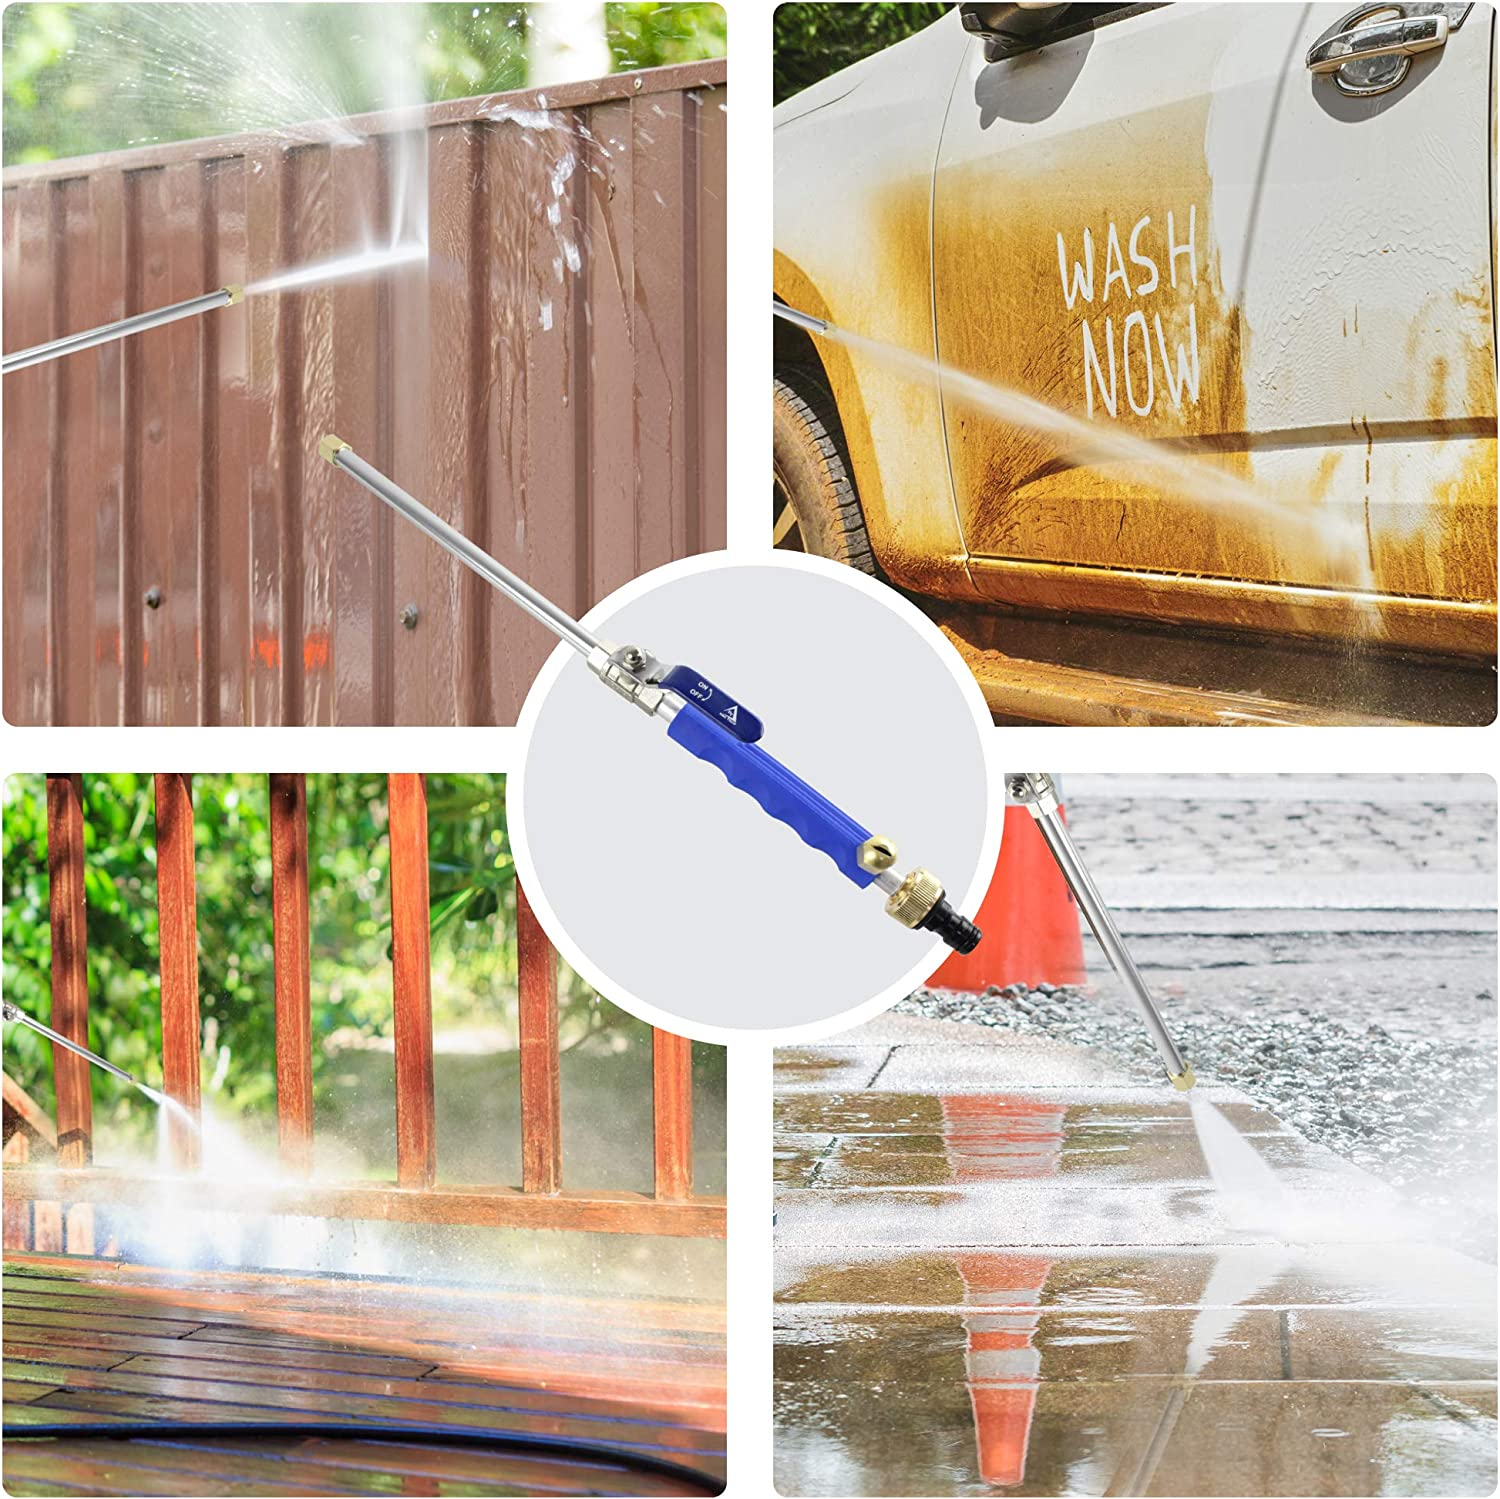 Hydrojet Water Power Nozzle Heavy Duty Metal Watering Sprayer with Universal Hose End Lapis Blue Hydro Jet High Pressure Power Washer Wand for Car Washing or Garden Cleaning